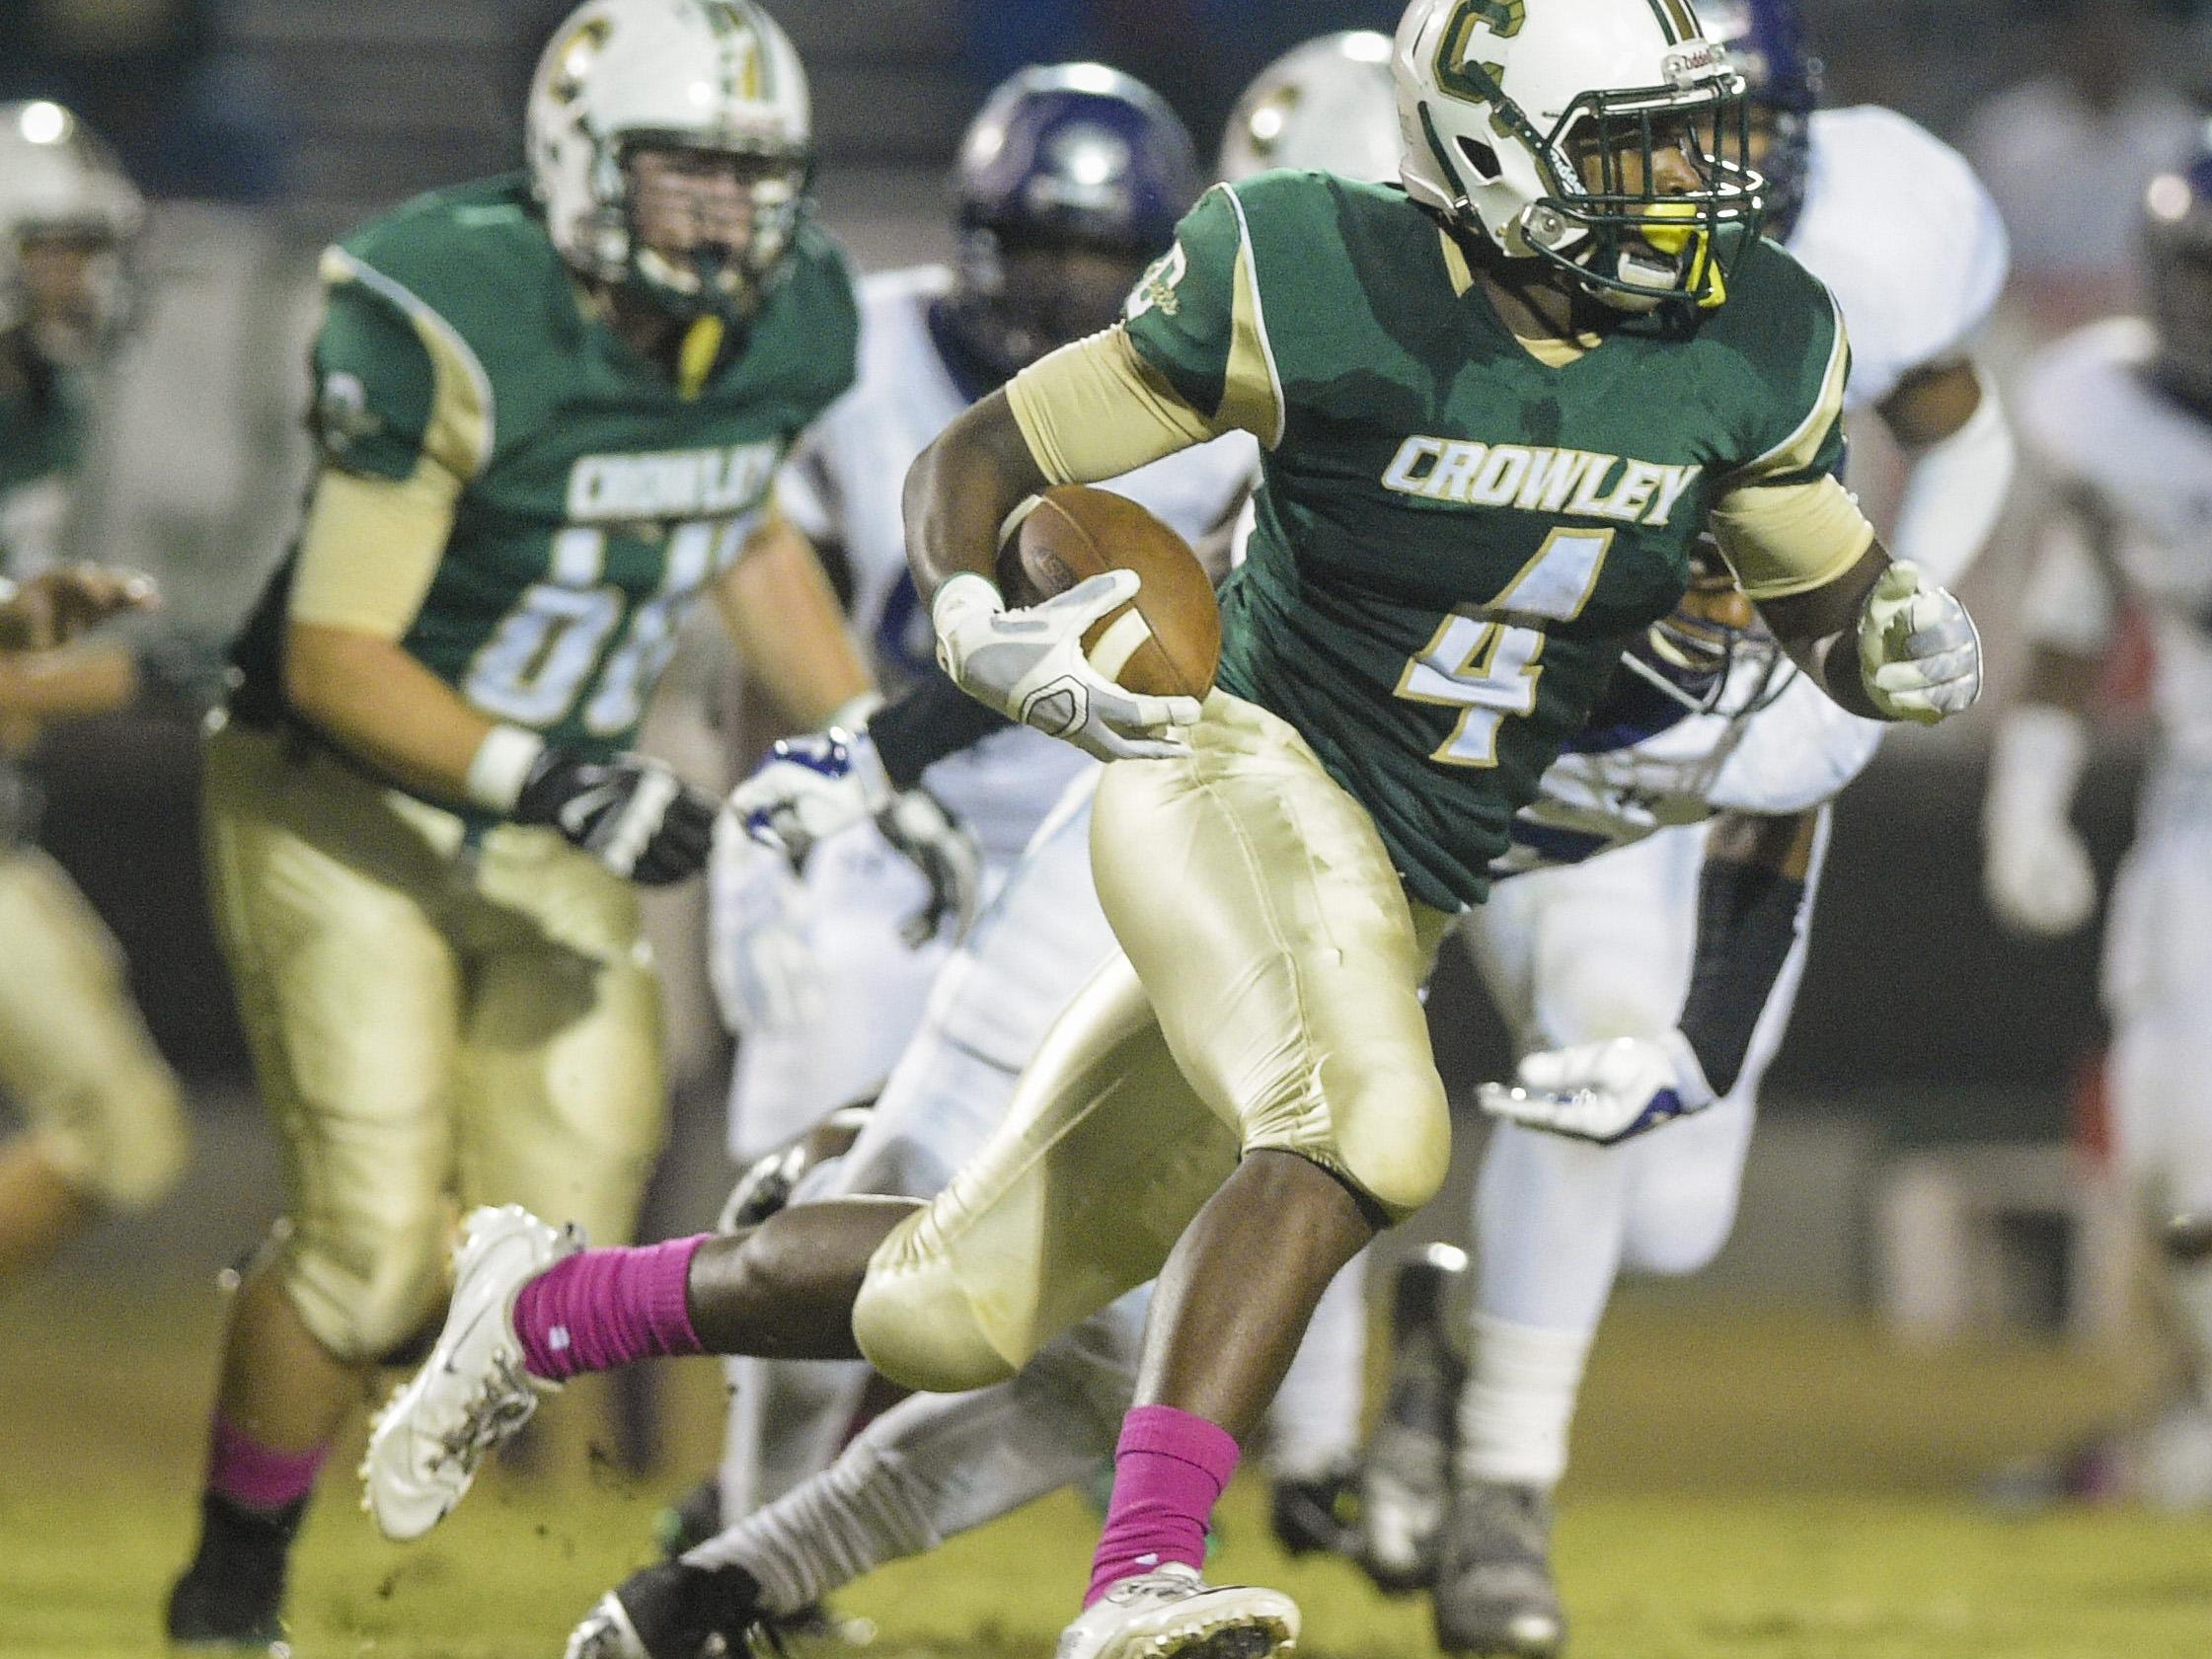 Crowley running back Ty'Von Griffin (4) is expected to lead the Gents' explosive offense this fall as one of the Acadiana area's most dynamic weapons.